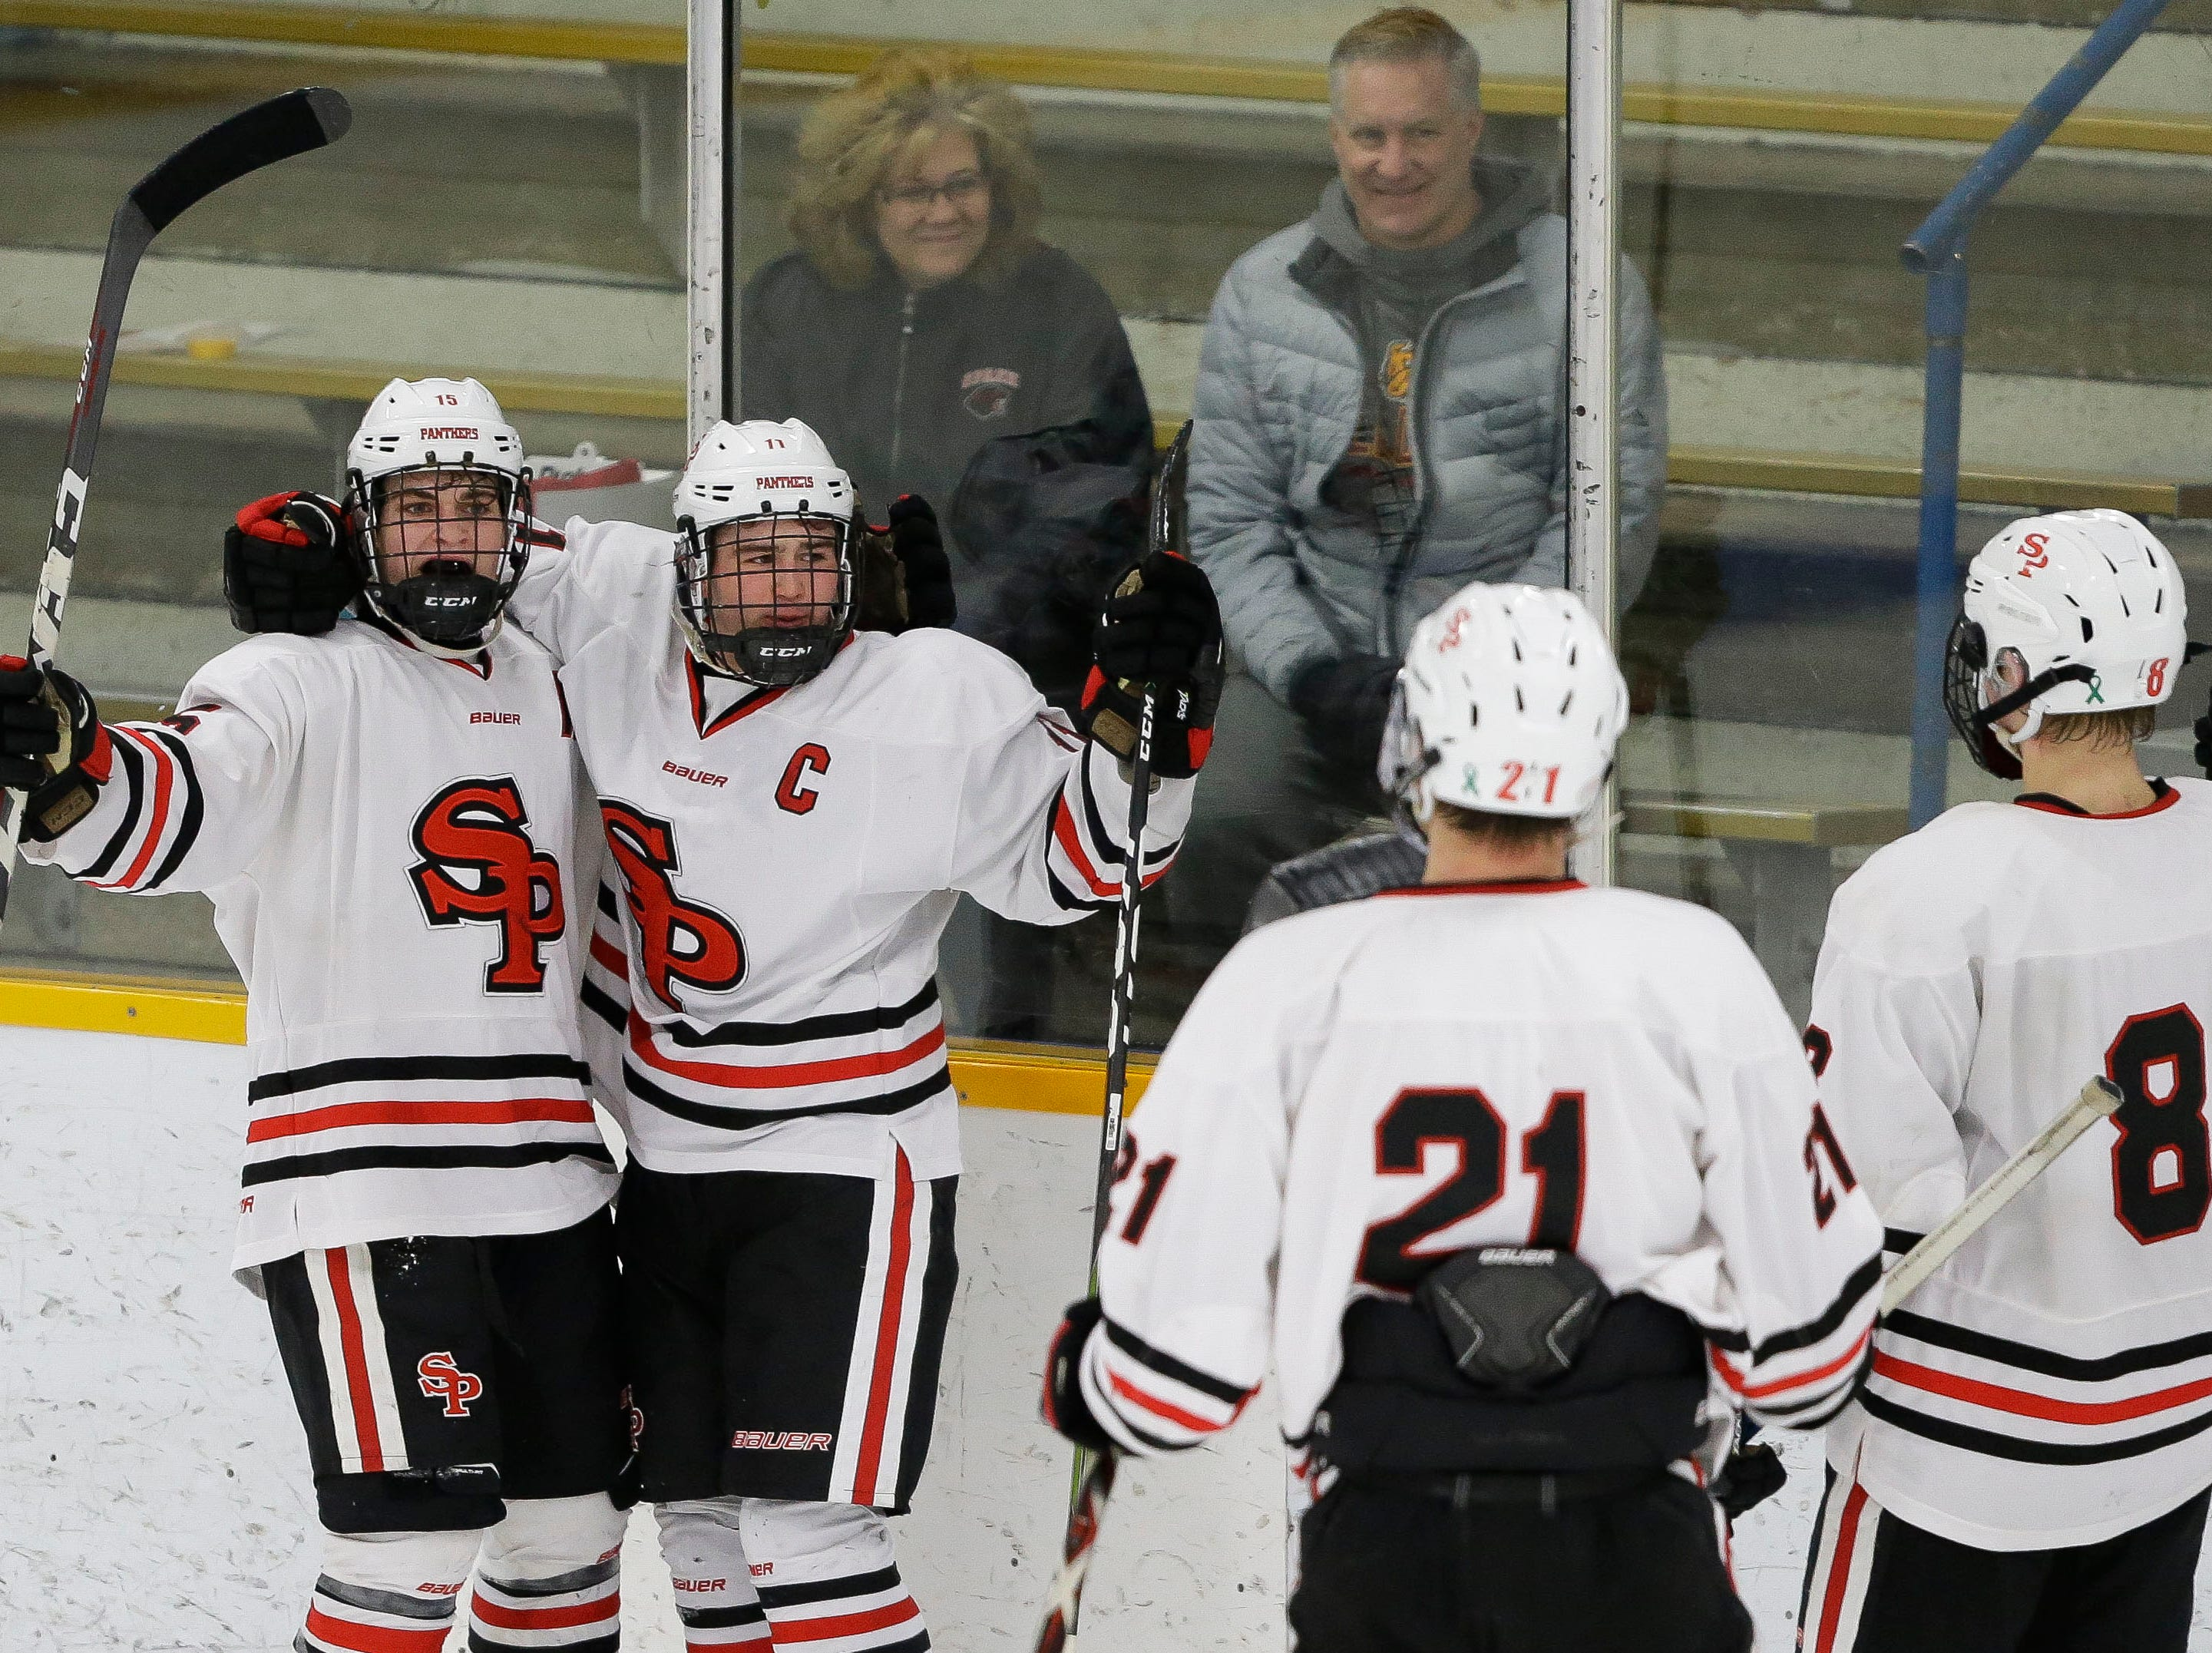 SPASH's Barrett Brooks (11) celebrates after scoring an empty-net goal on Saturday, January 26, 2019, at K.B. Willett Ice Arena in Stevens Point, Wis. Brooks tallied a hat trick to lead the Panthers to a 5-3 victory.Tork Mason/USA TODAY NETWORK-Wisconsin